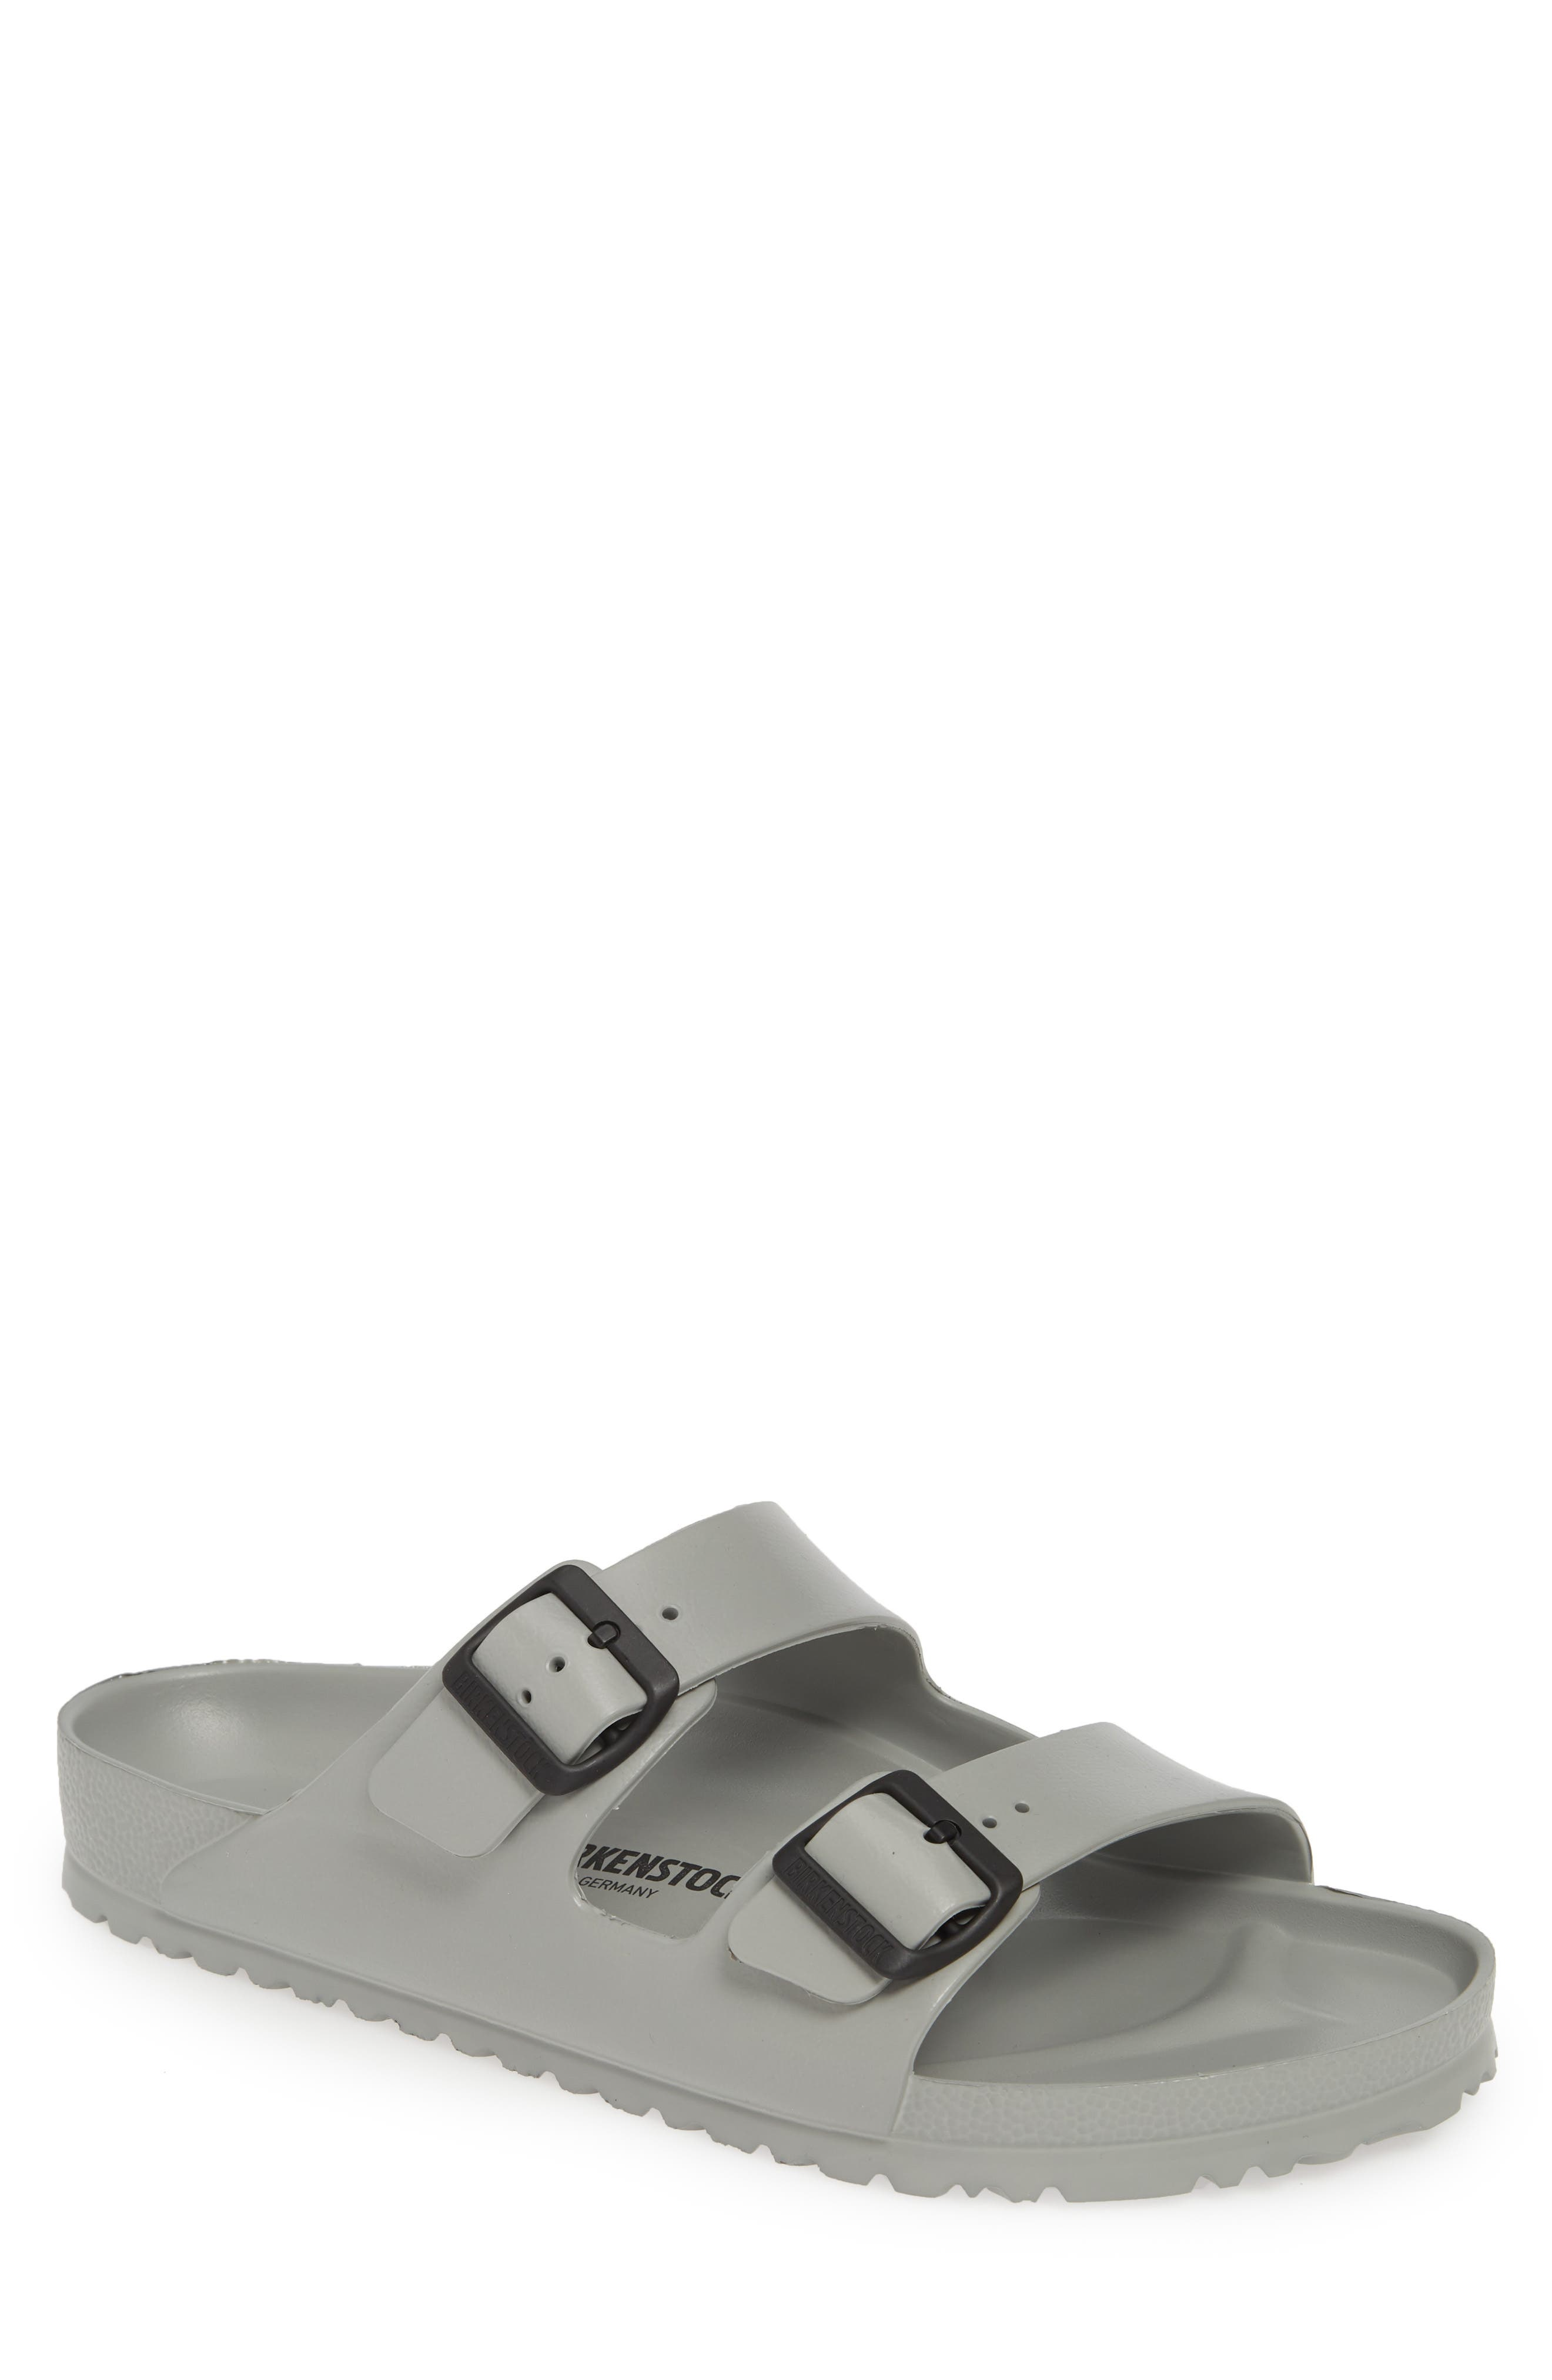 Essentials Arizona EVA Waterproof Slide Sandal, Main, color, SEAL GRAY